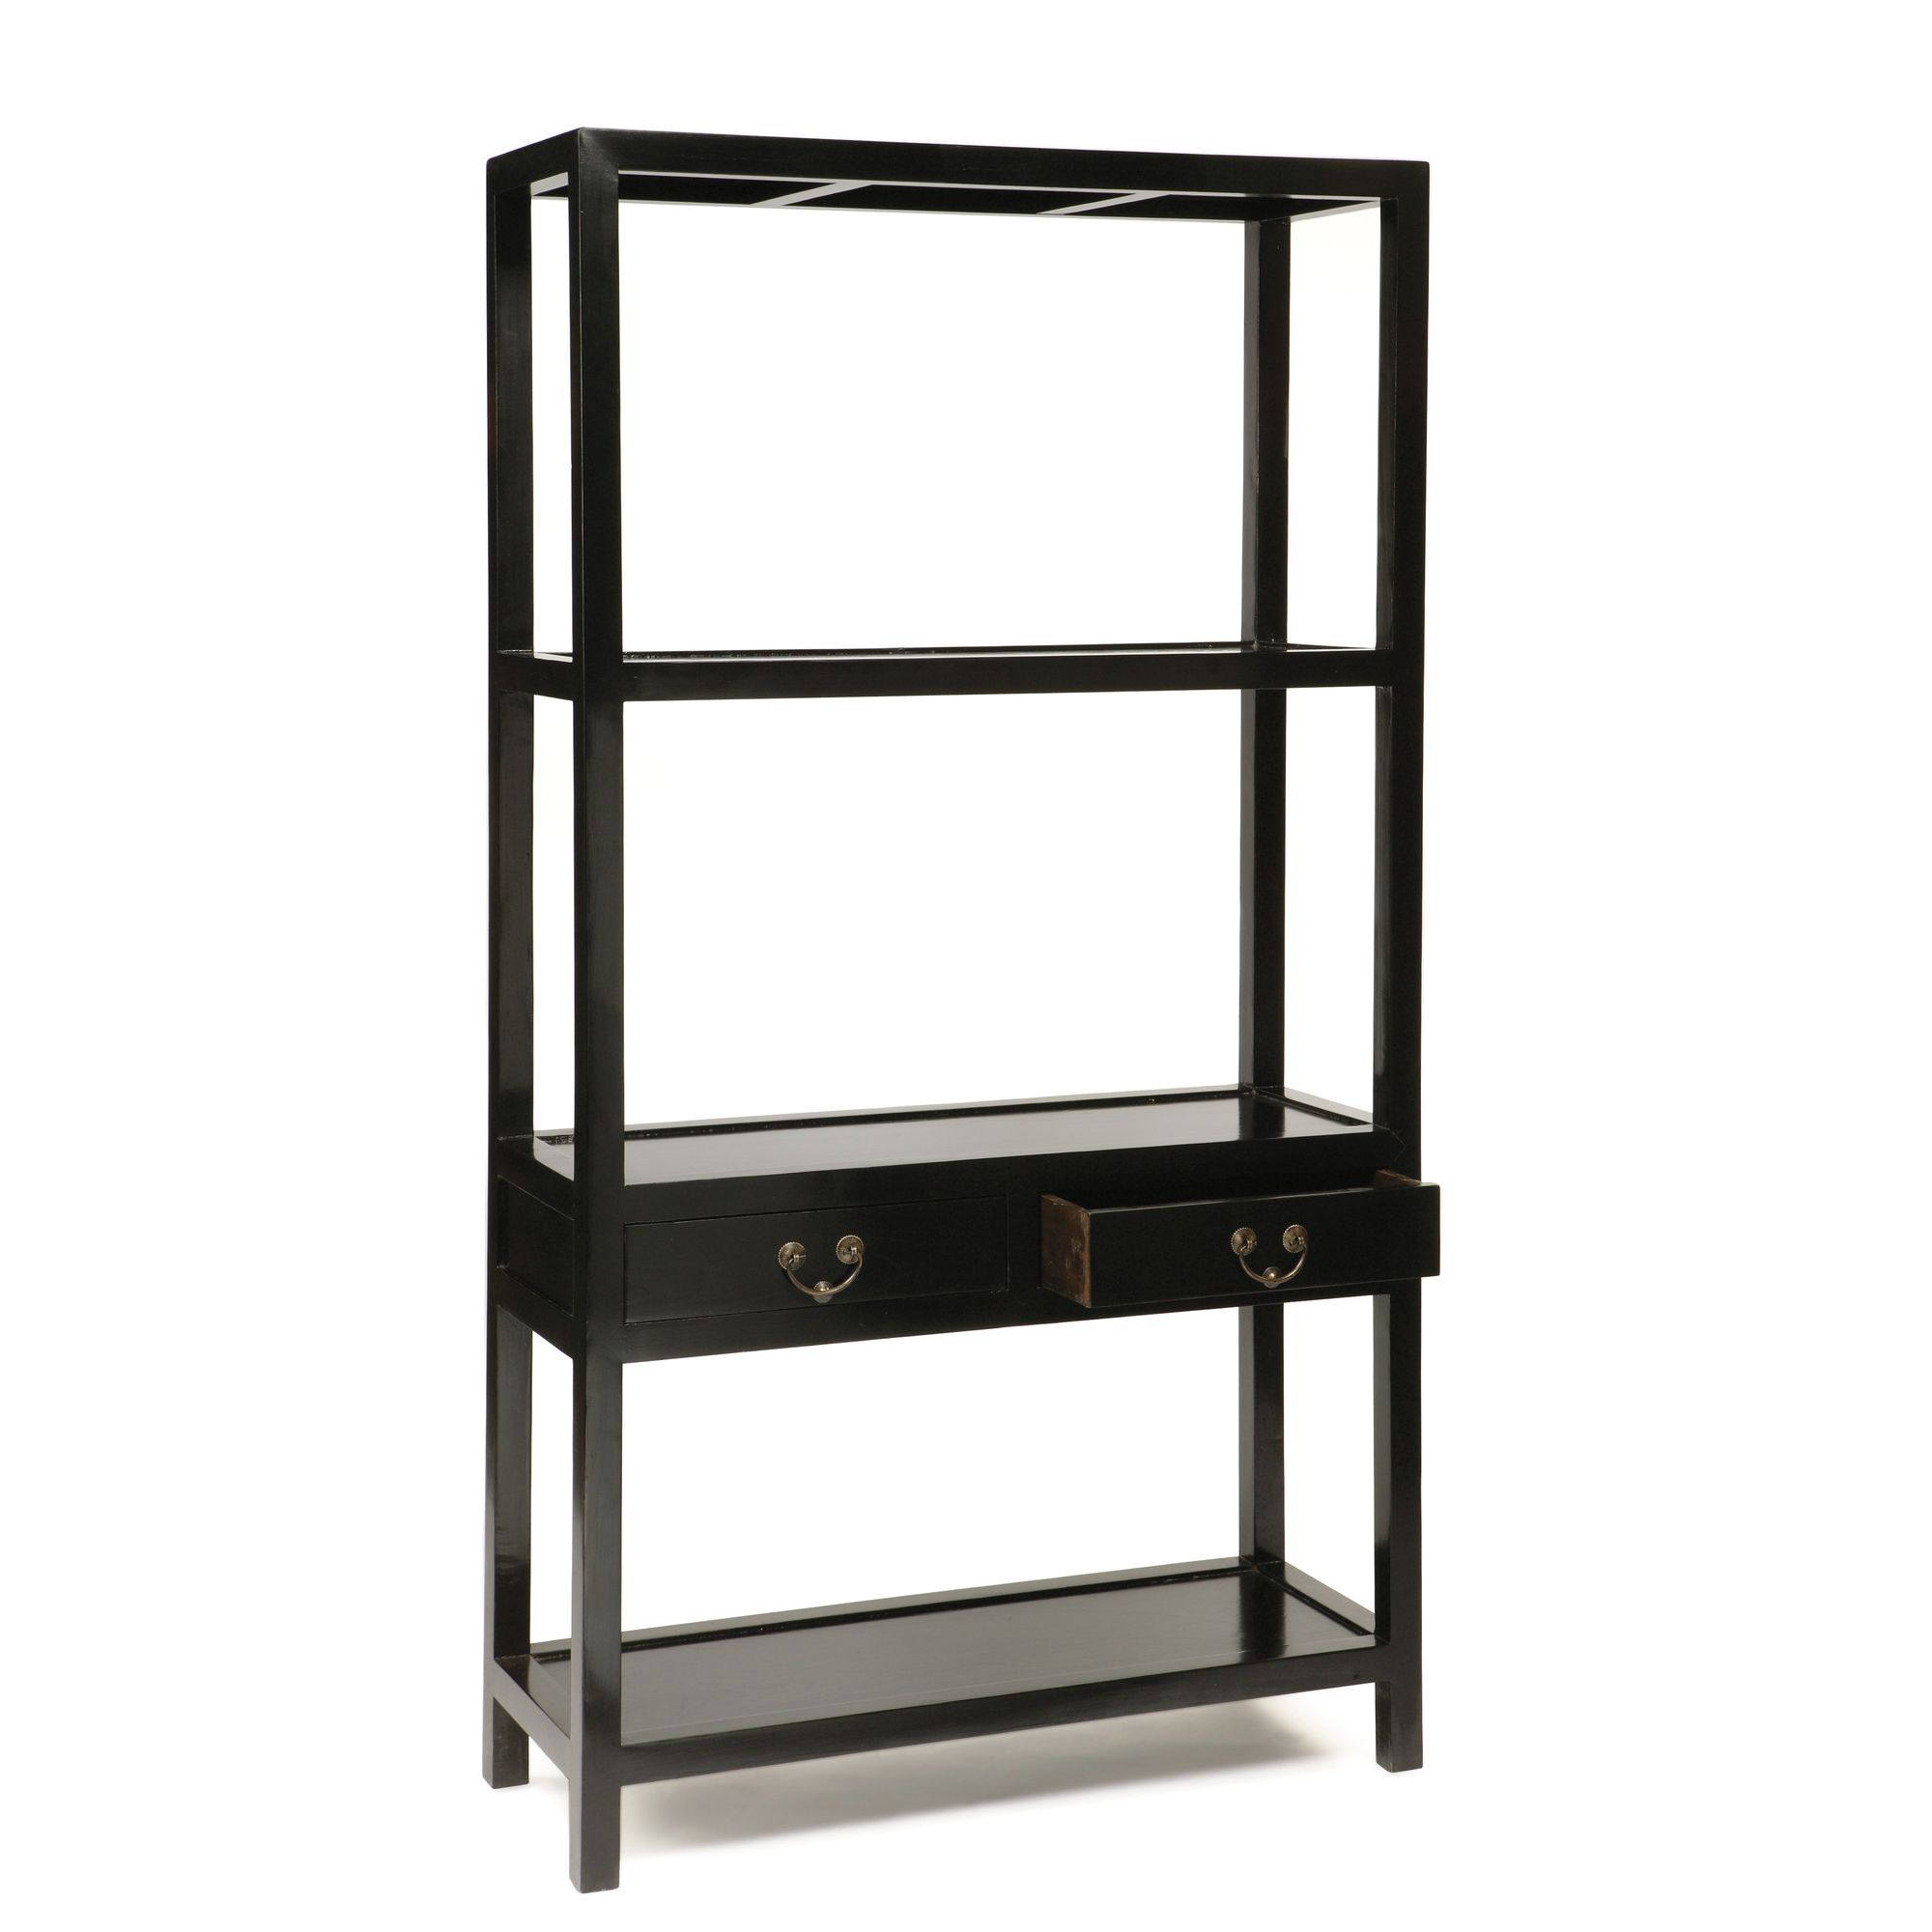 Shimu Chinese Classical Ming Bookshelf - Black Lacquer at Tesco Direct